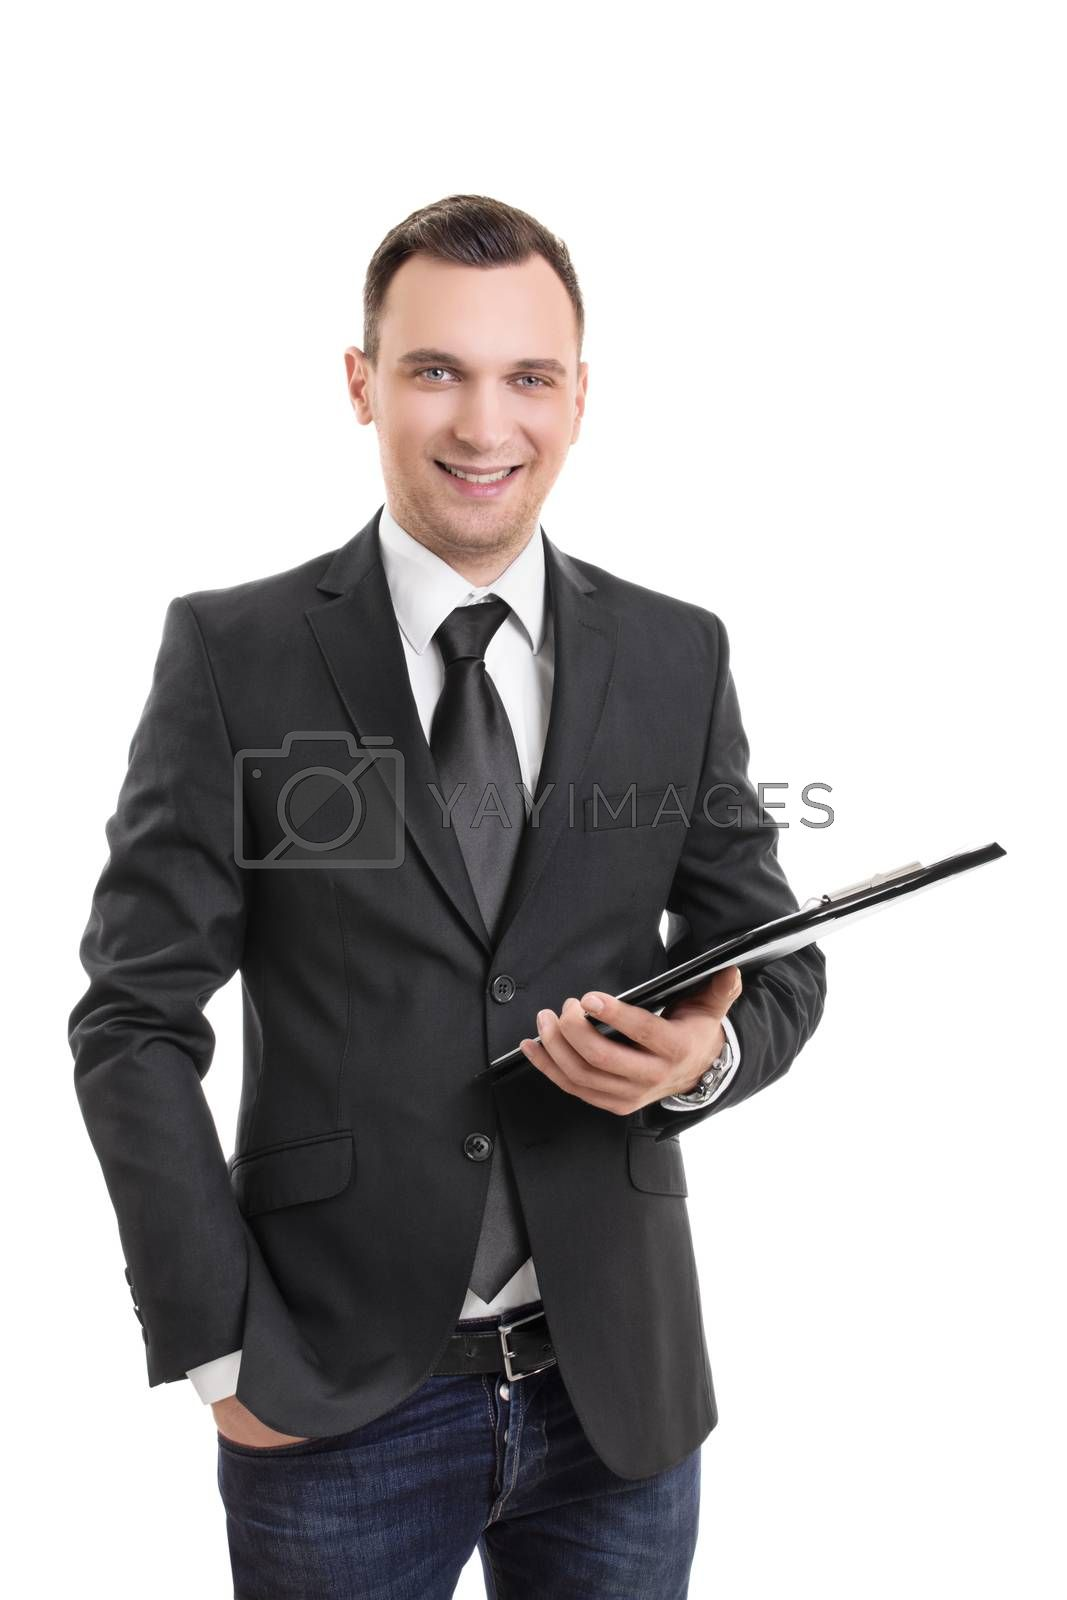 Smiling attractive young businessman holding a clipboard by Mendelex